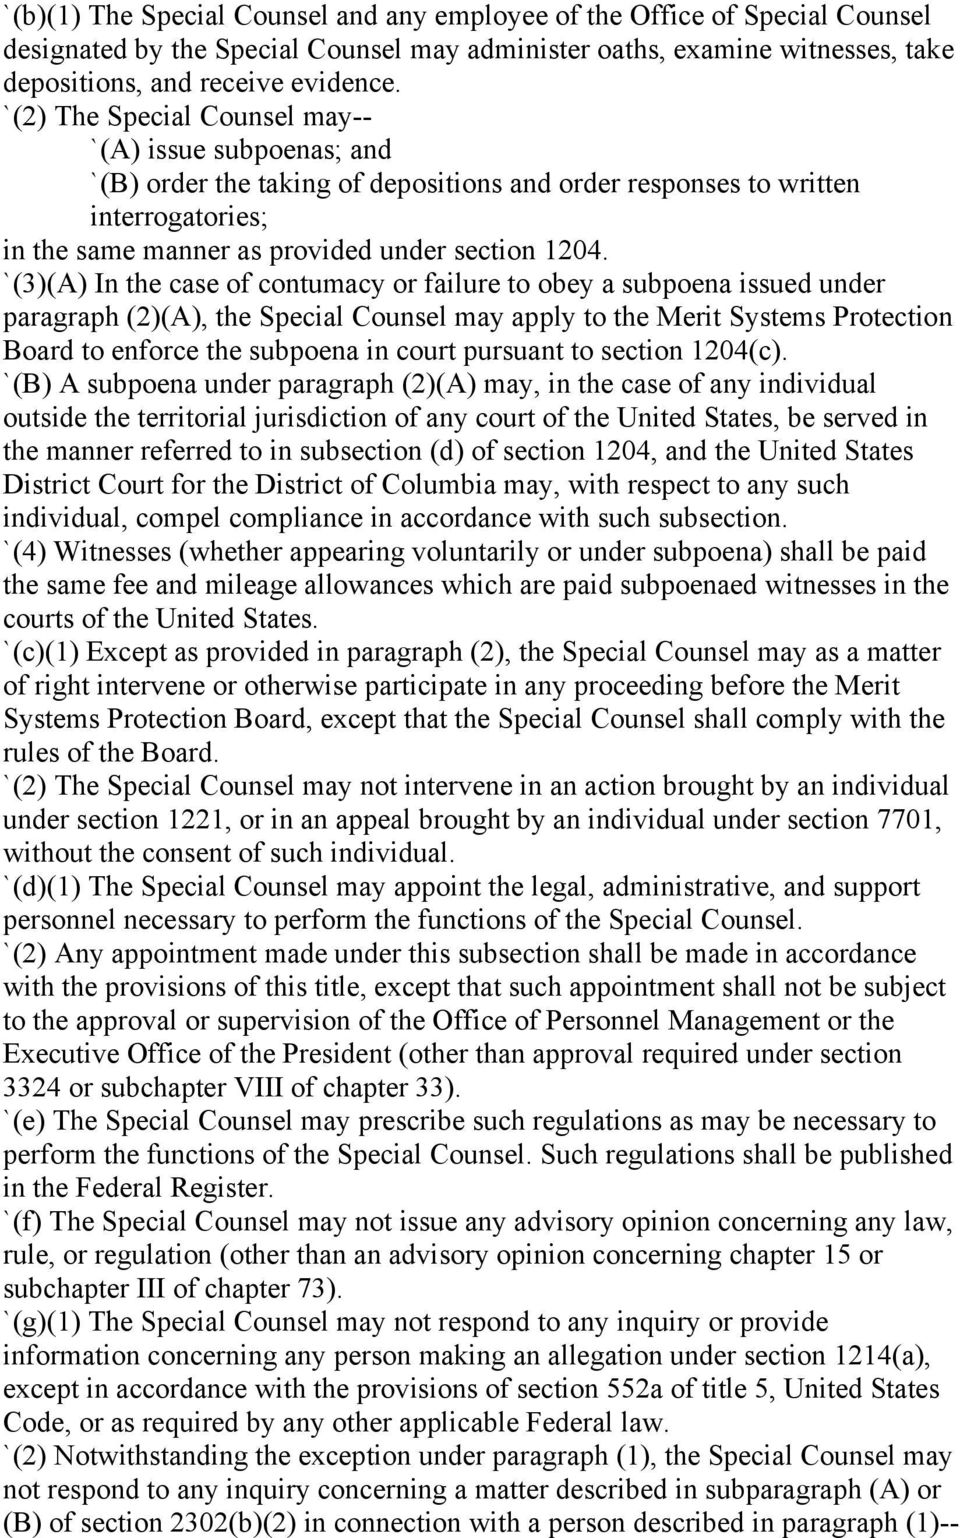 `(3)(A) In the case of contumacy or failure to obey a subpoena issued under paragraph (2)(A), the Special Counsel may apply to the Merit Systems Protection Board to enforce the subpoena in court